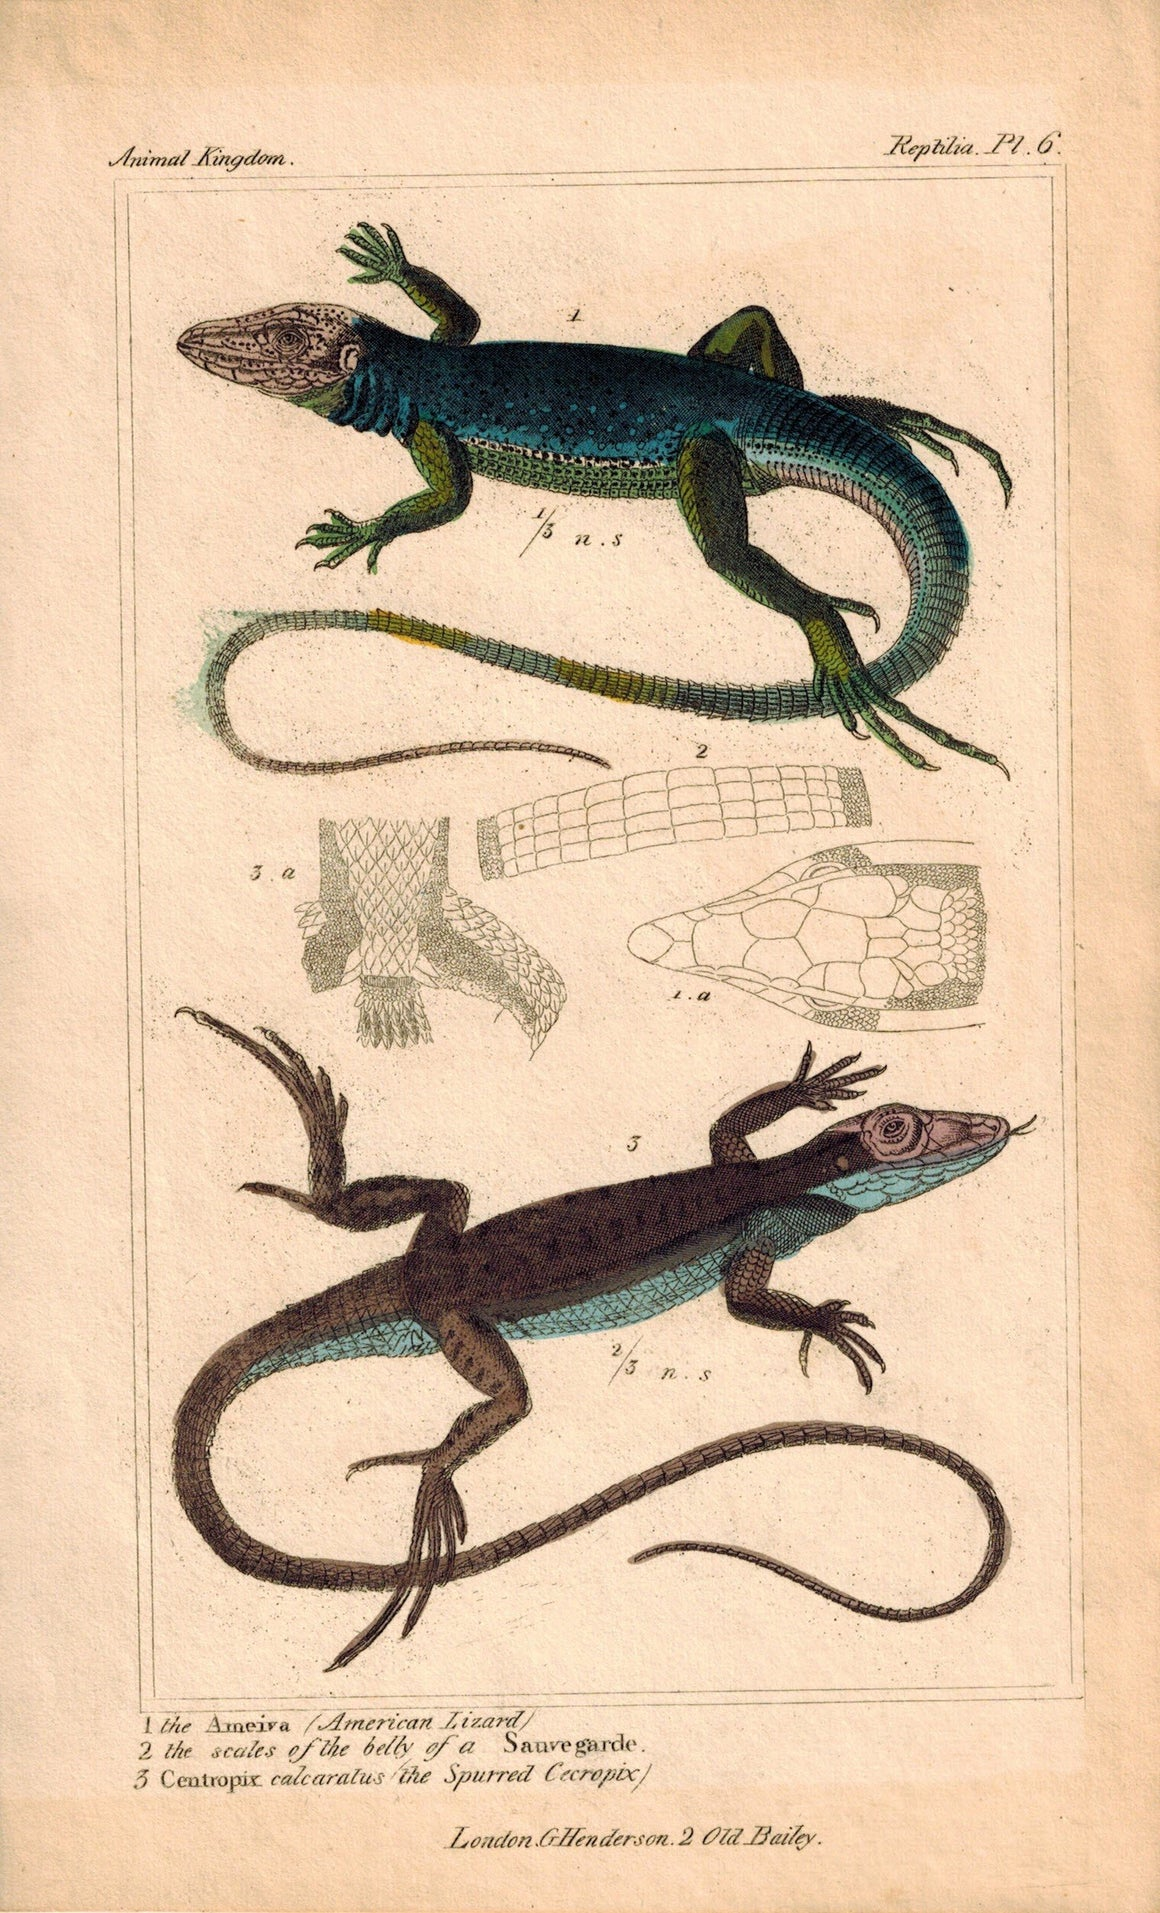 American Lizard 1834 Engraved Cuvier Reptile Print Plate 6